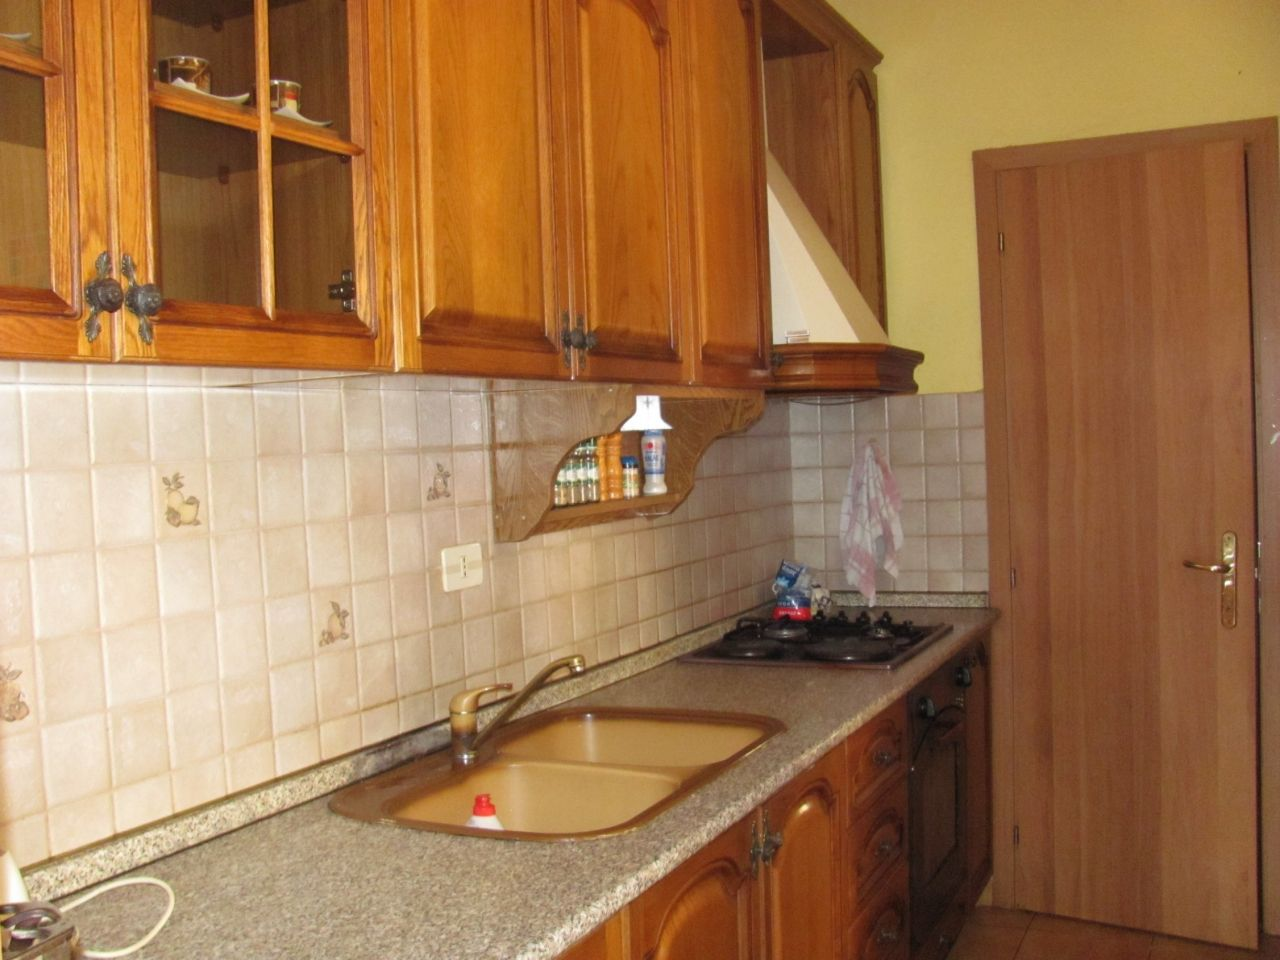 2 bedroom apartment for sale in a very good area in tirana, albania. the kitchen has all necessary equipment